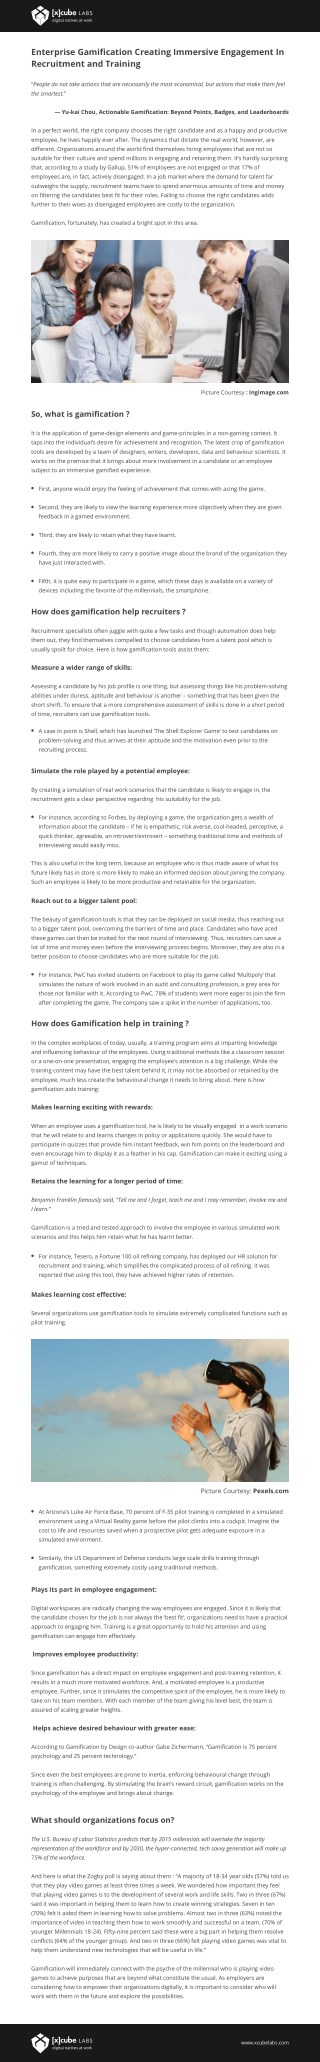 Enterprise Gamification Creating Immersive Engagement In Recruitment and Training